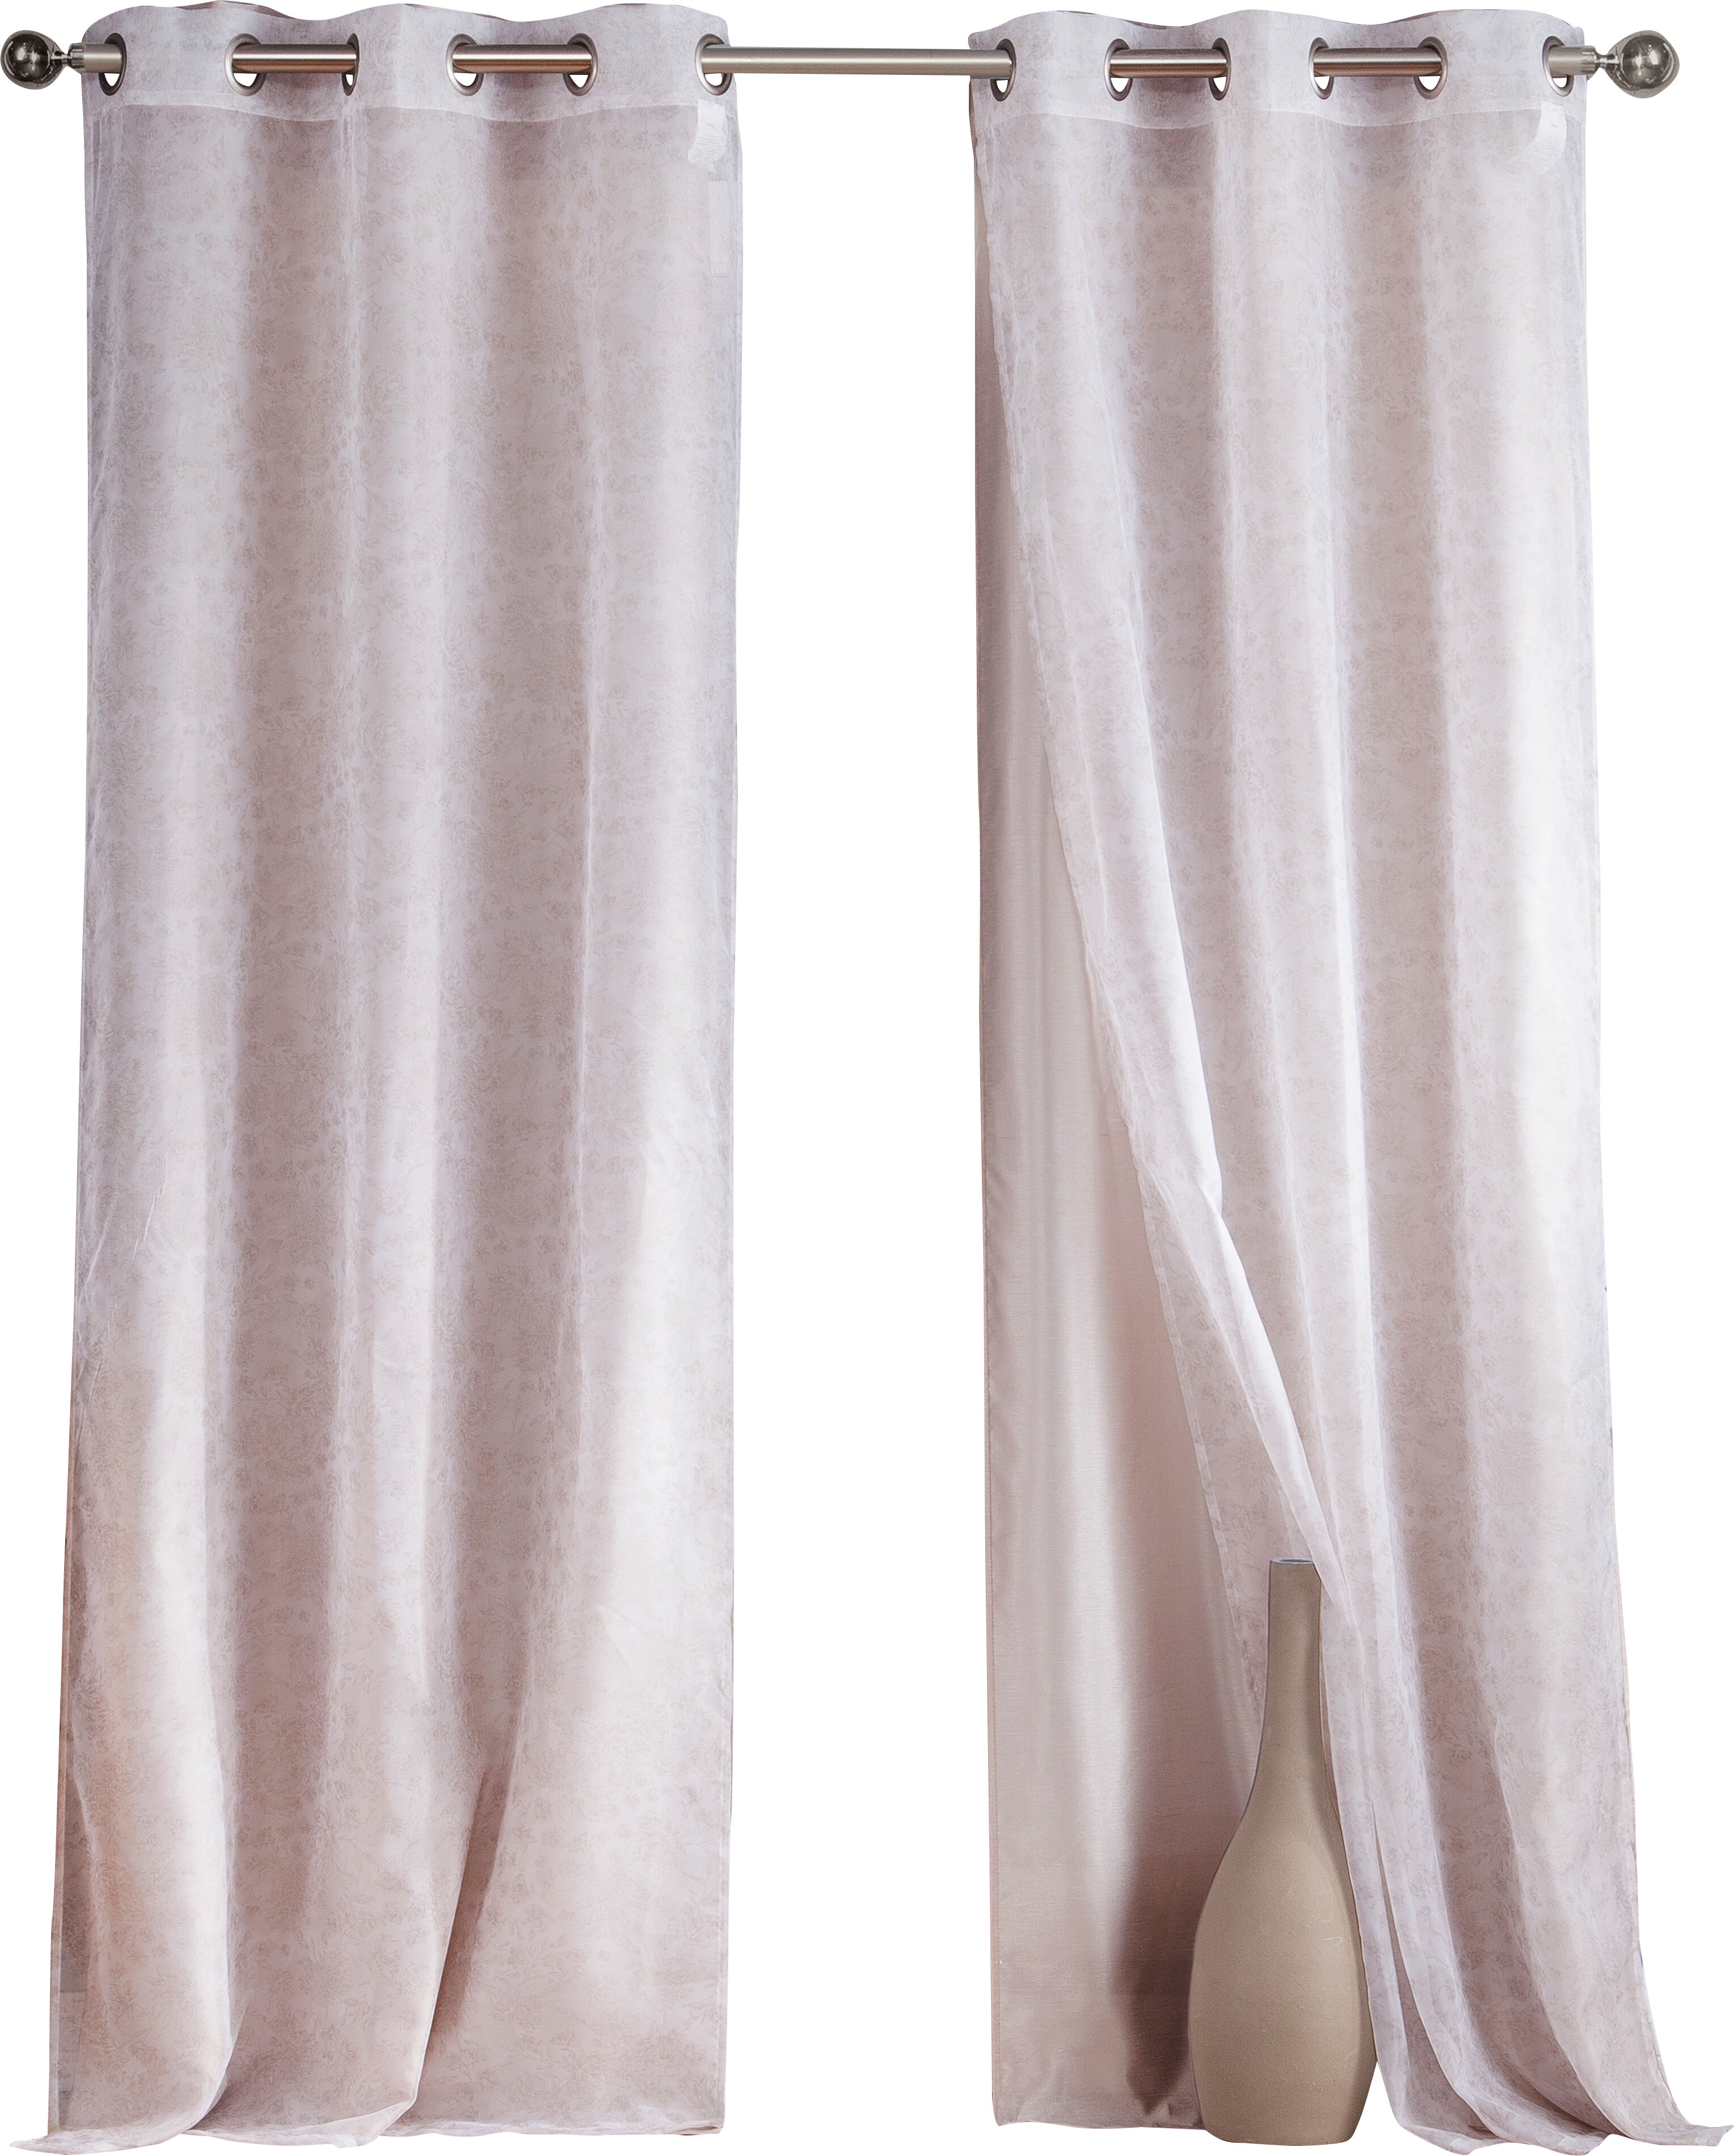 over aurora curtain garden inch drapes x wide long blackout product overstock home on free thermal extra shipping orders panel